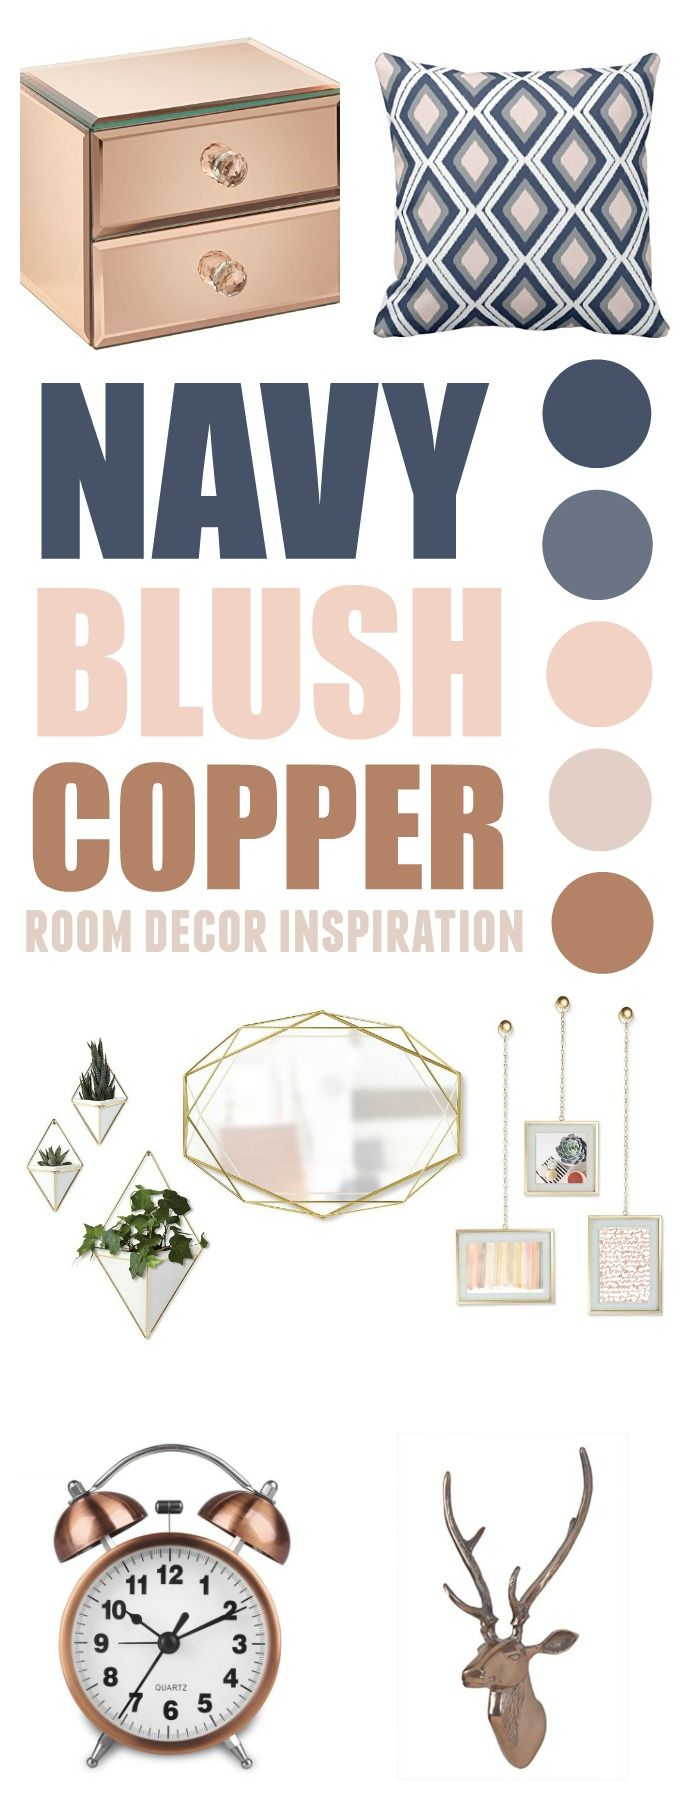 25+ best ideas about Room color schemes on Pinterest | Bedroom ...